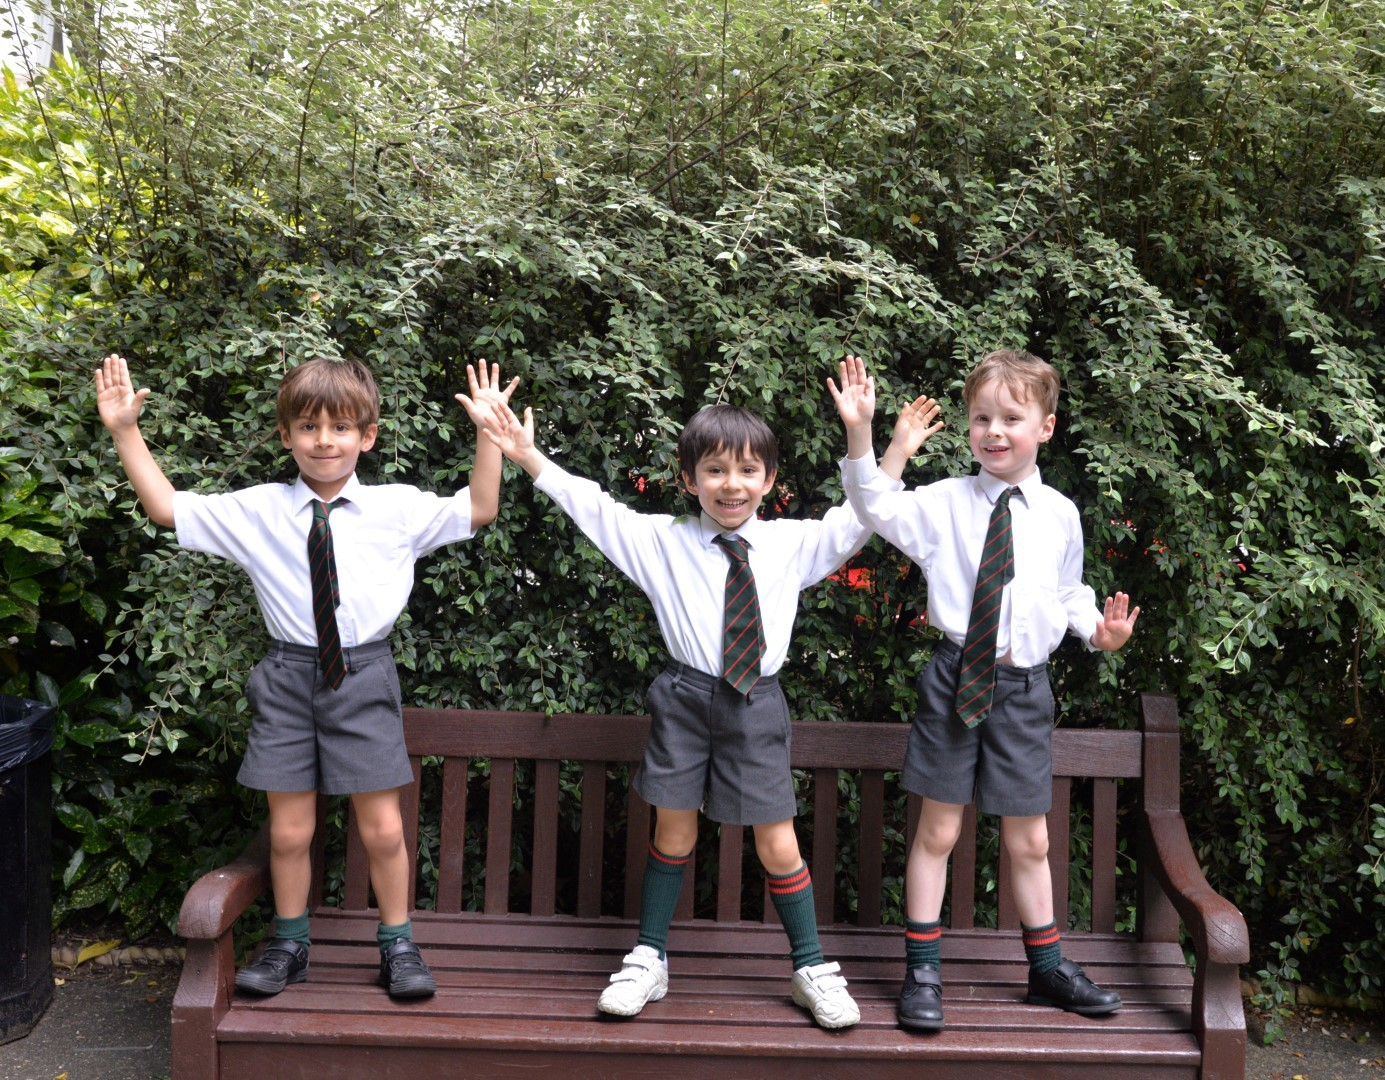 Three UK students standing on a bench at school.